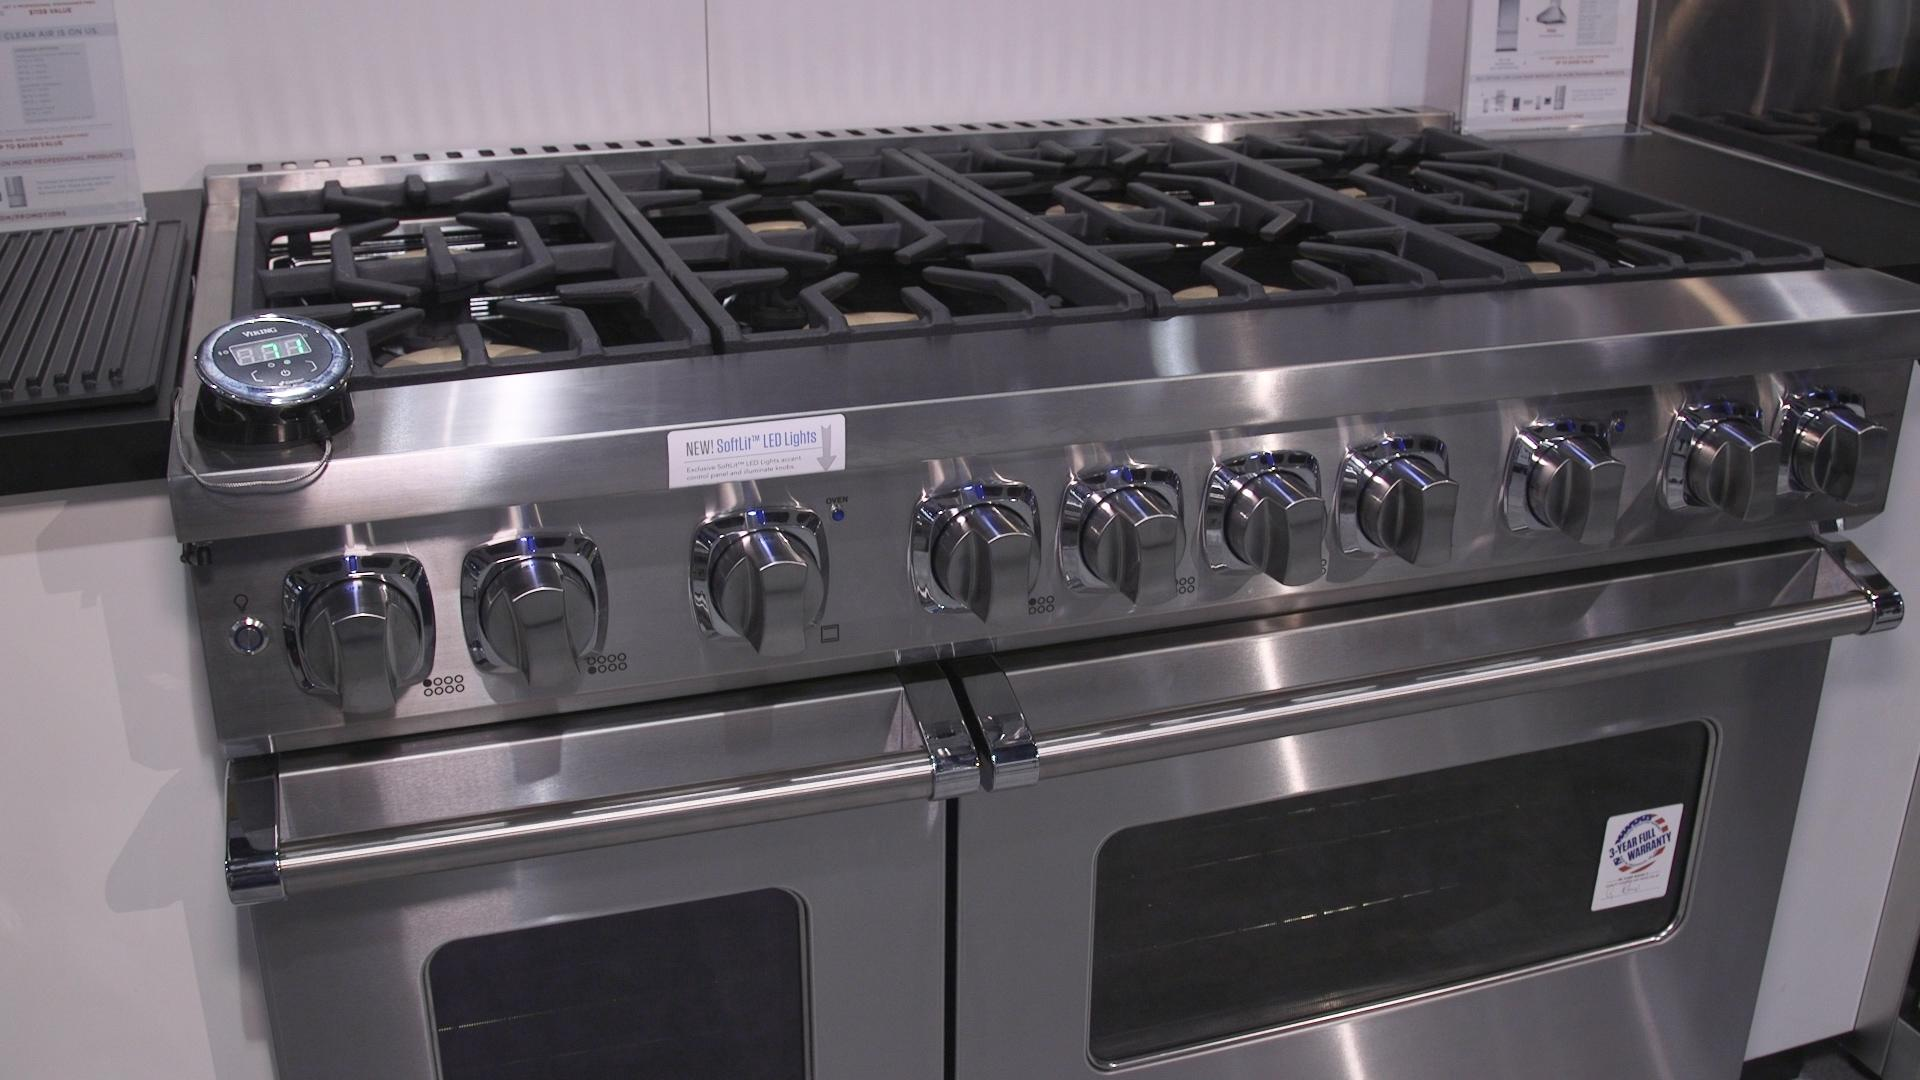 Kitchen Gas Stove the best gas ranges for $1,000 or less - consumer reports